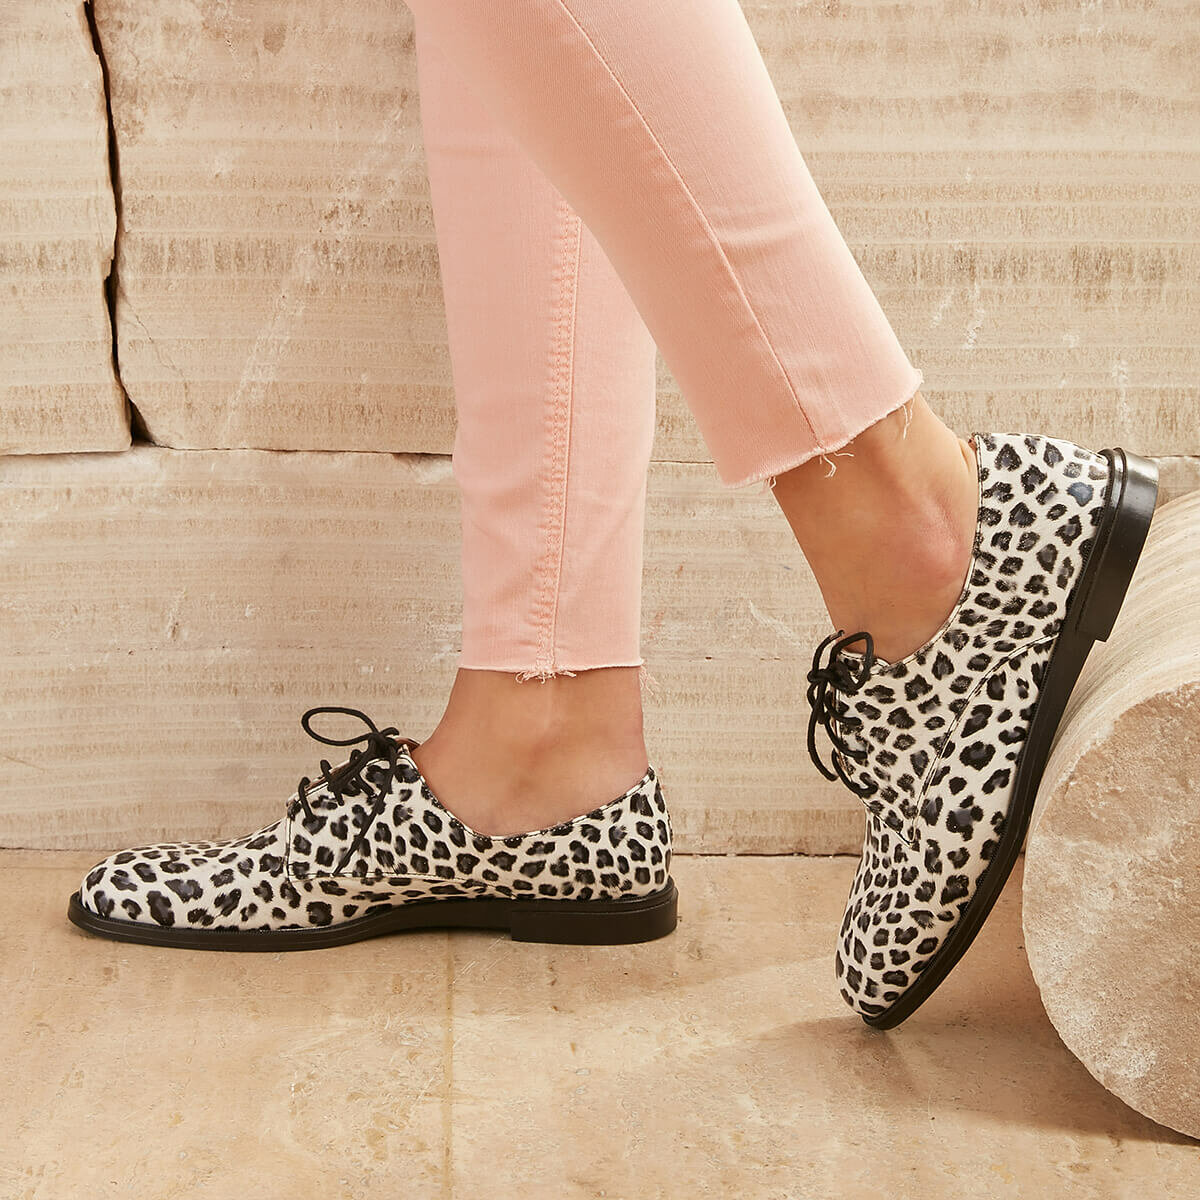 FLO 2020 Spring Women Oxford Shoes Leopard Ballerina Flats Shoes Women Moccasins Lace Up Loafers Women Oxford Shoes BUTIGO DENNIS01Z SKIN